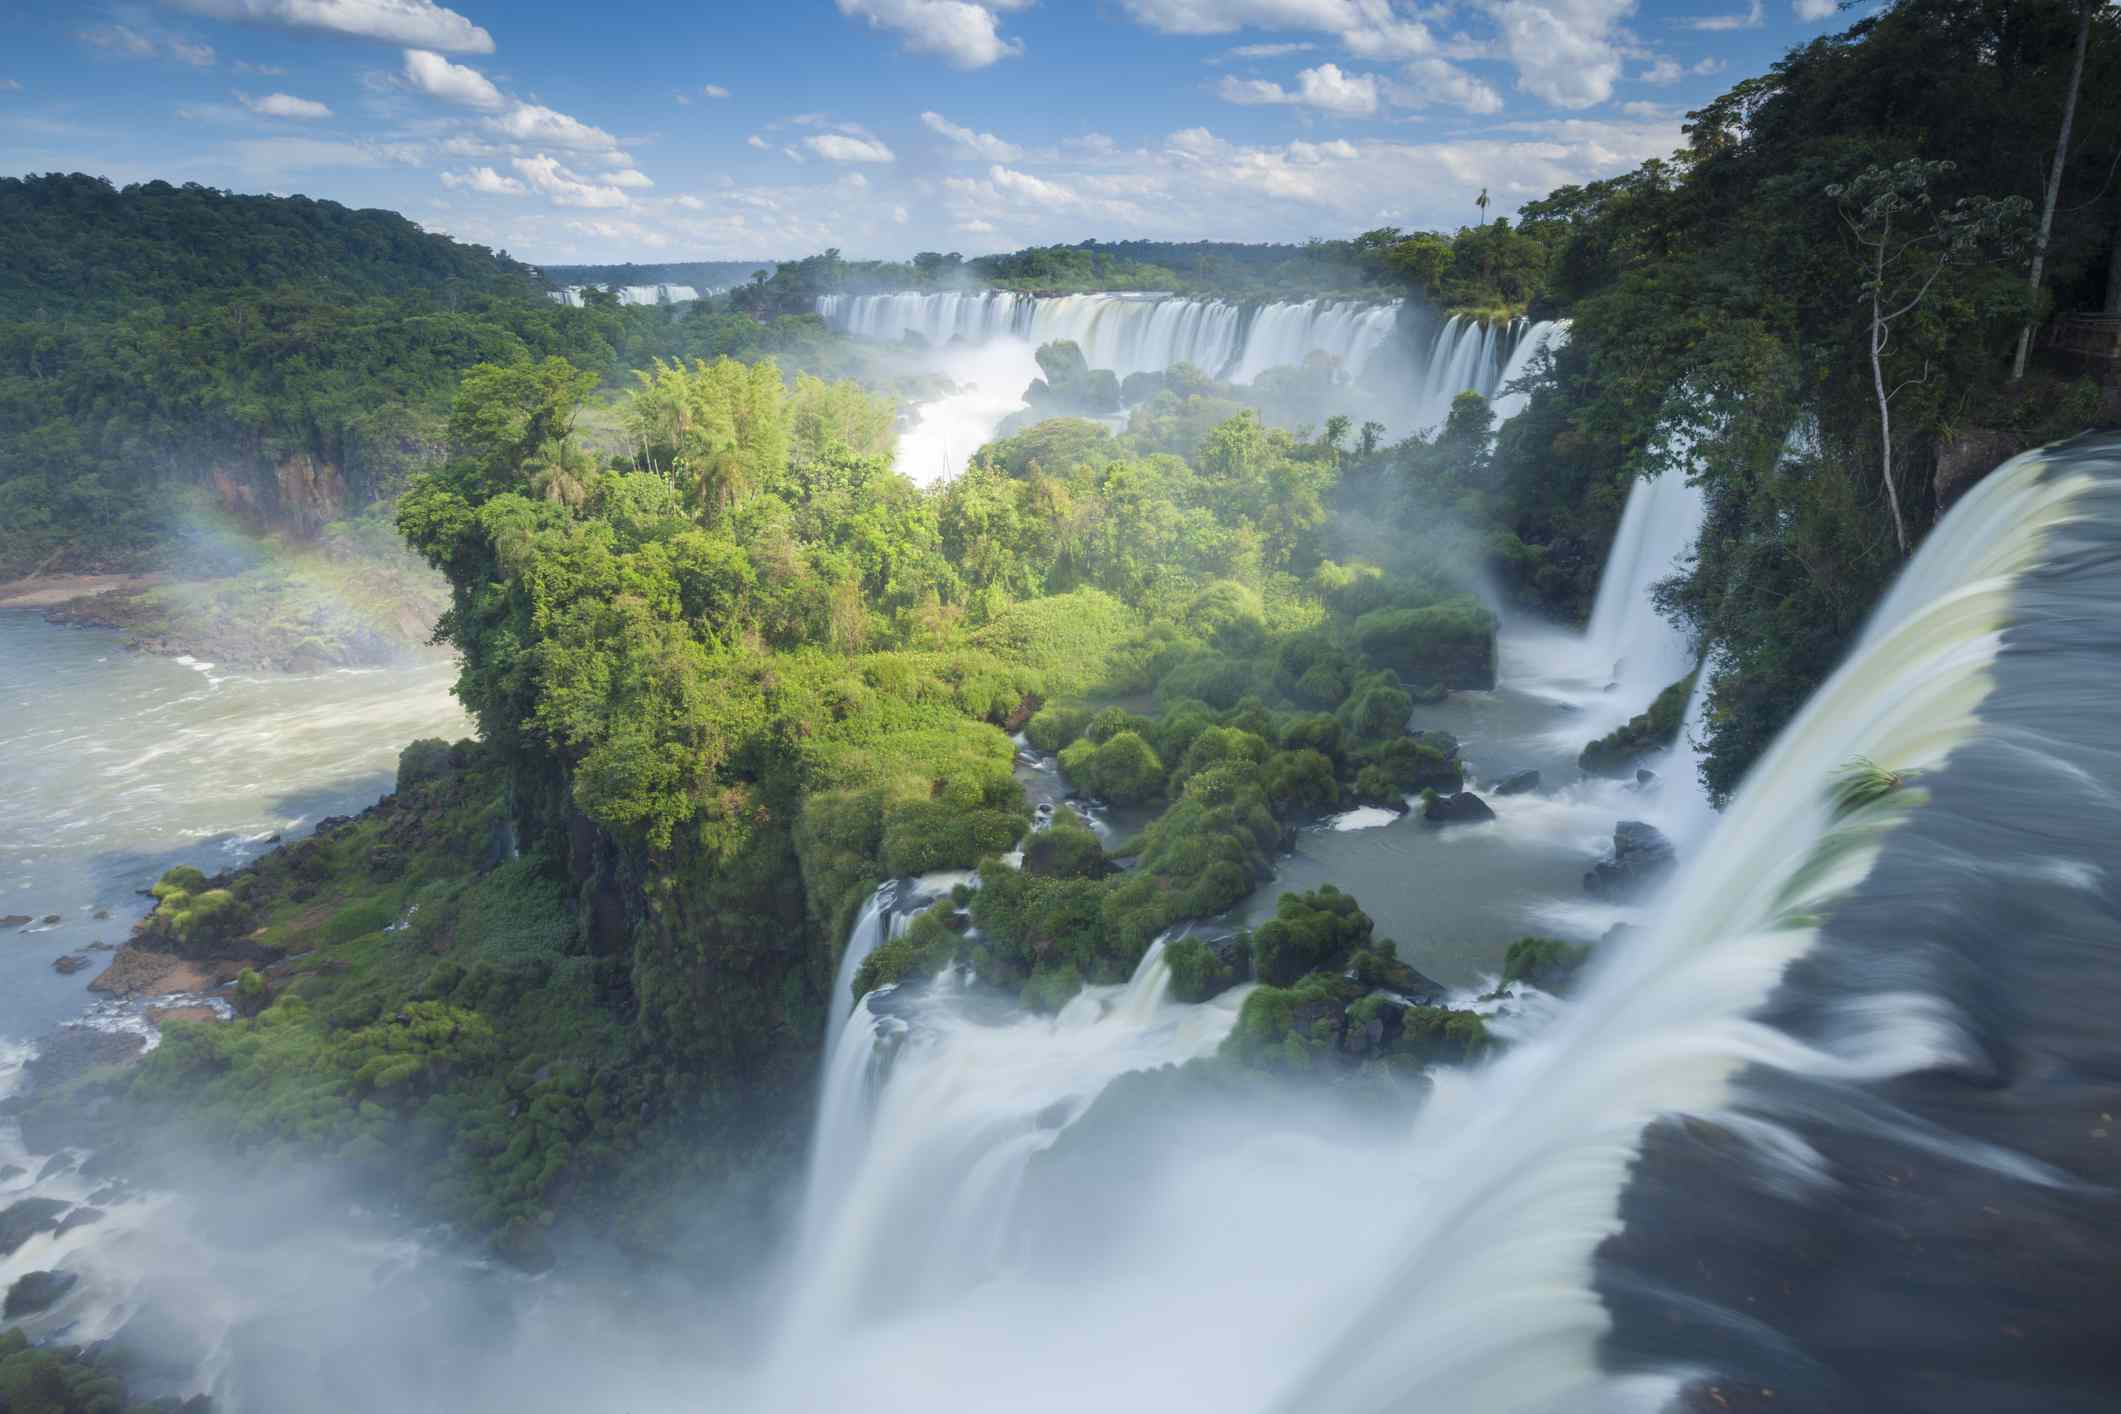 The massive Igauzu Falls that sits on the border of Argentina and Brazil.